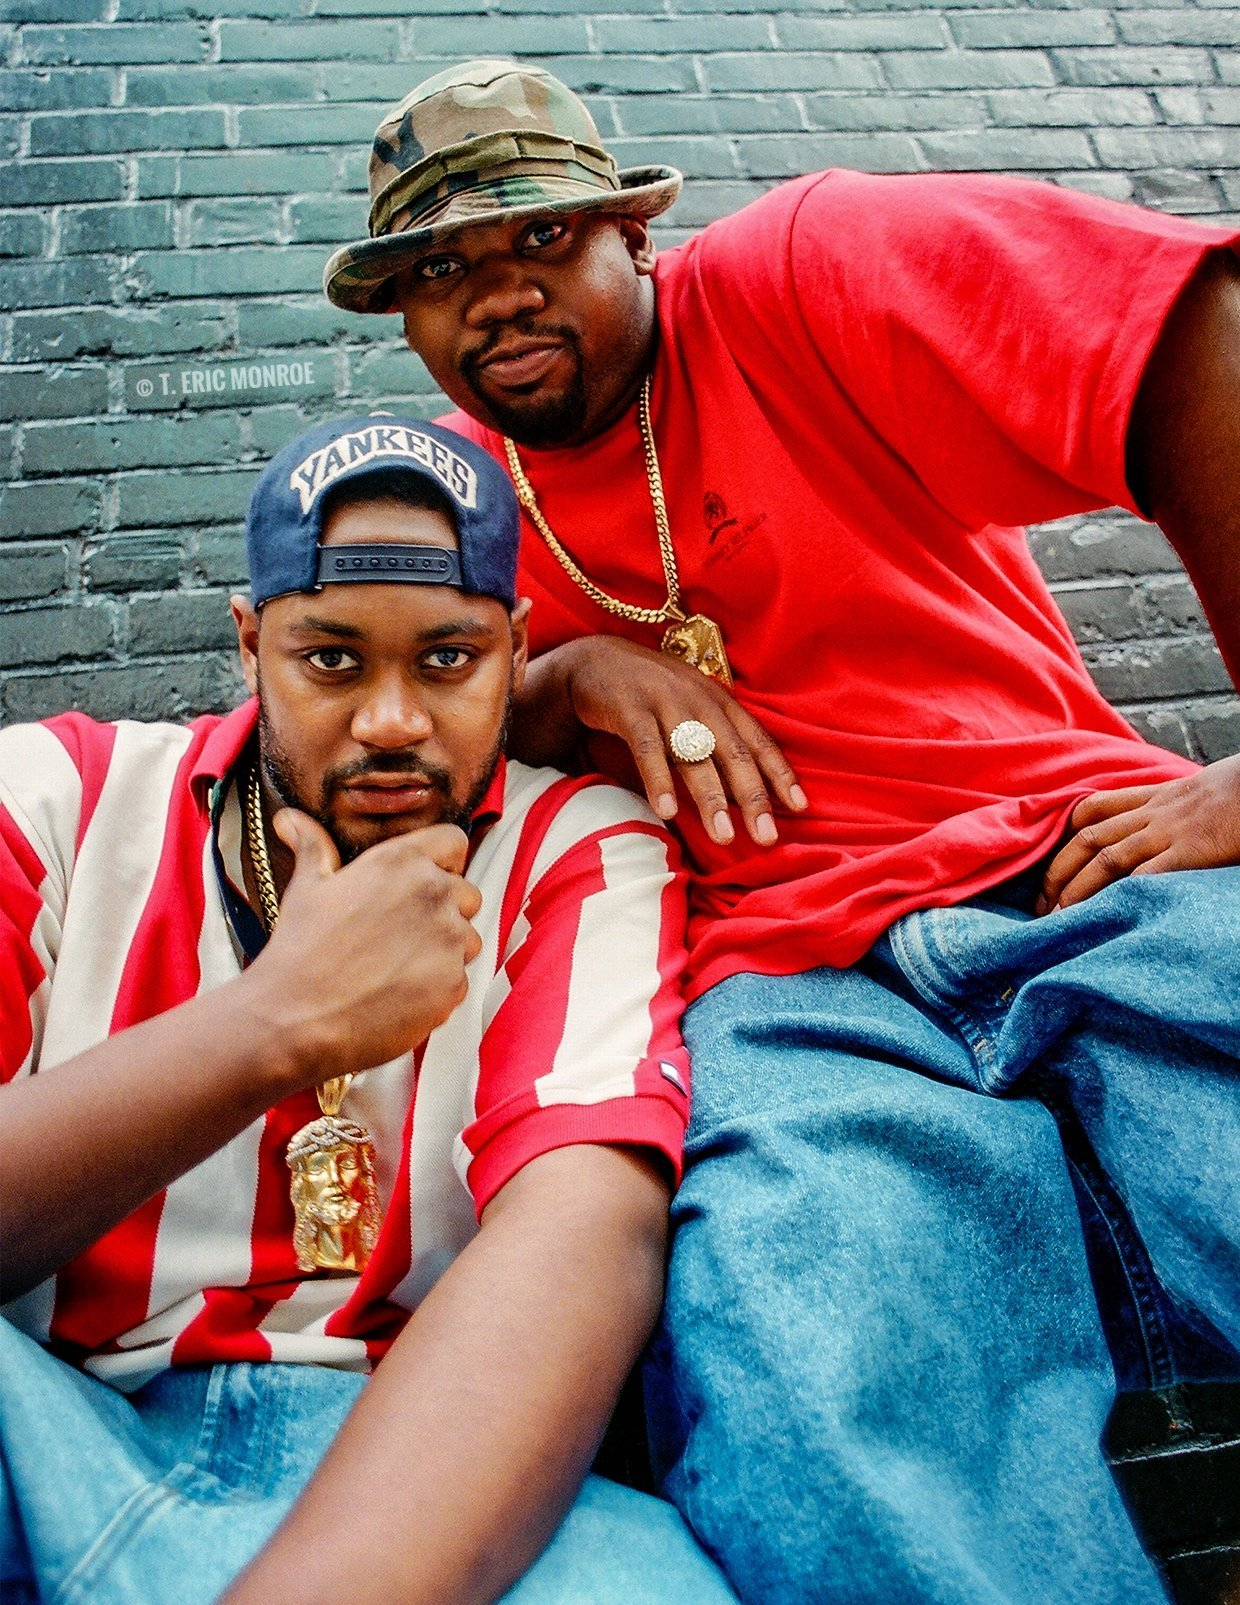 Raekwon & Ghostface, NYC 1995